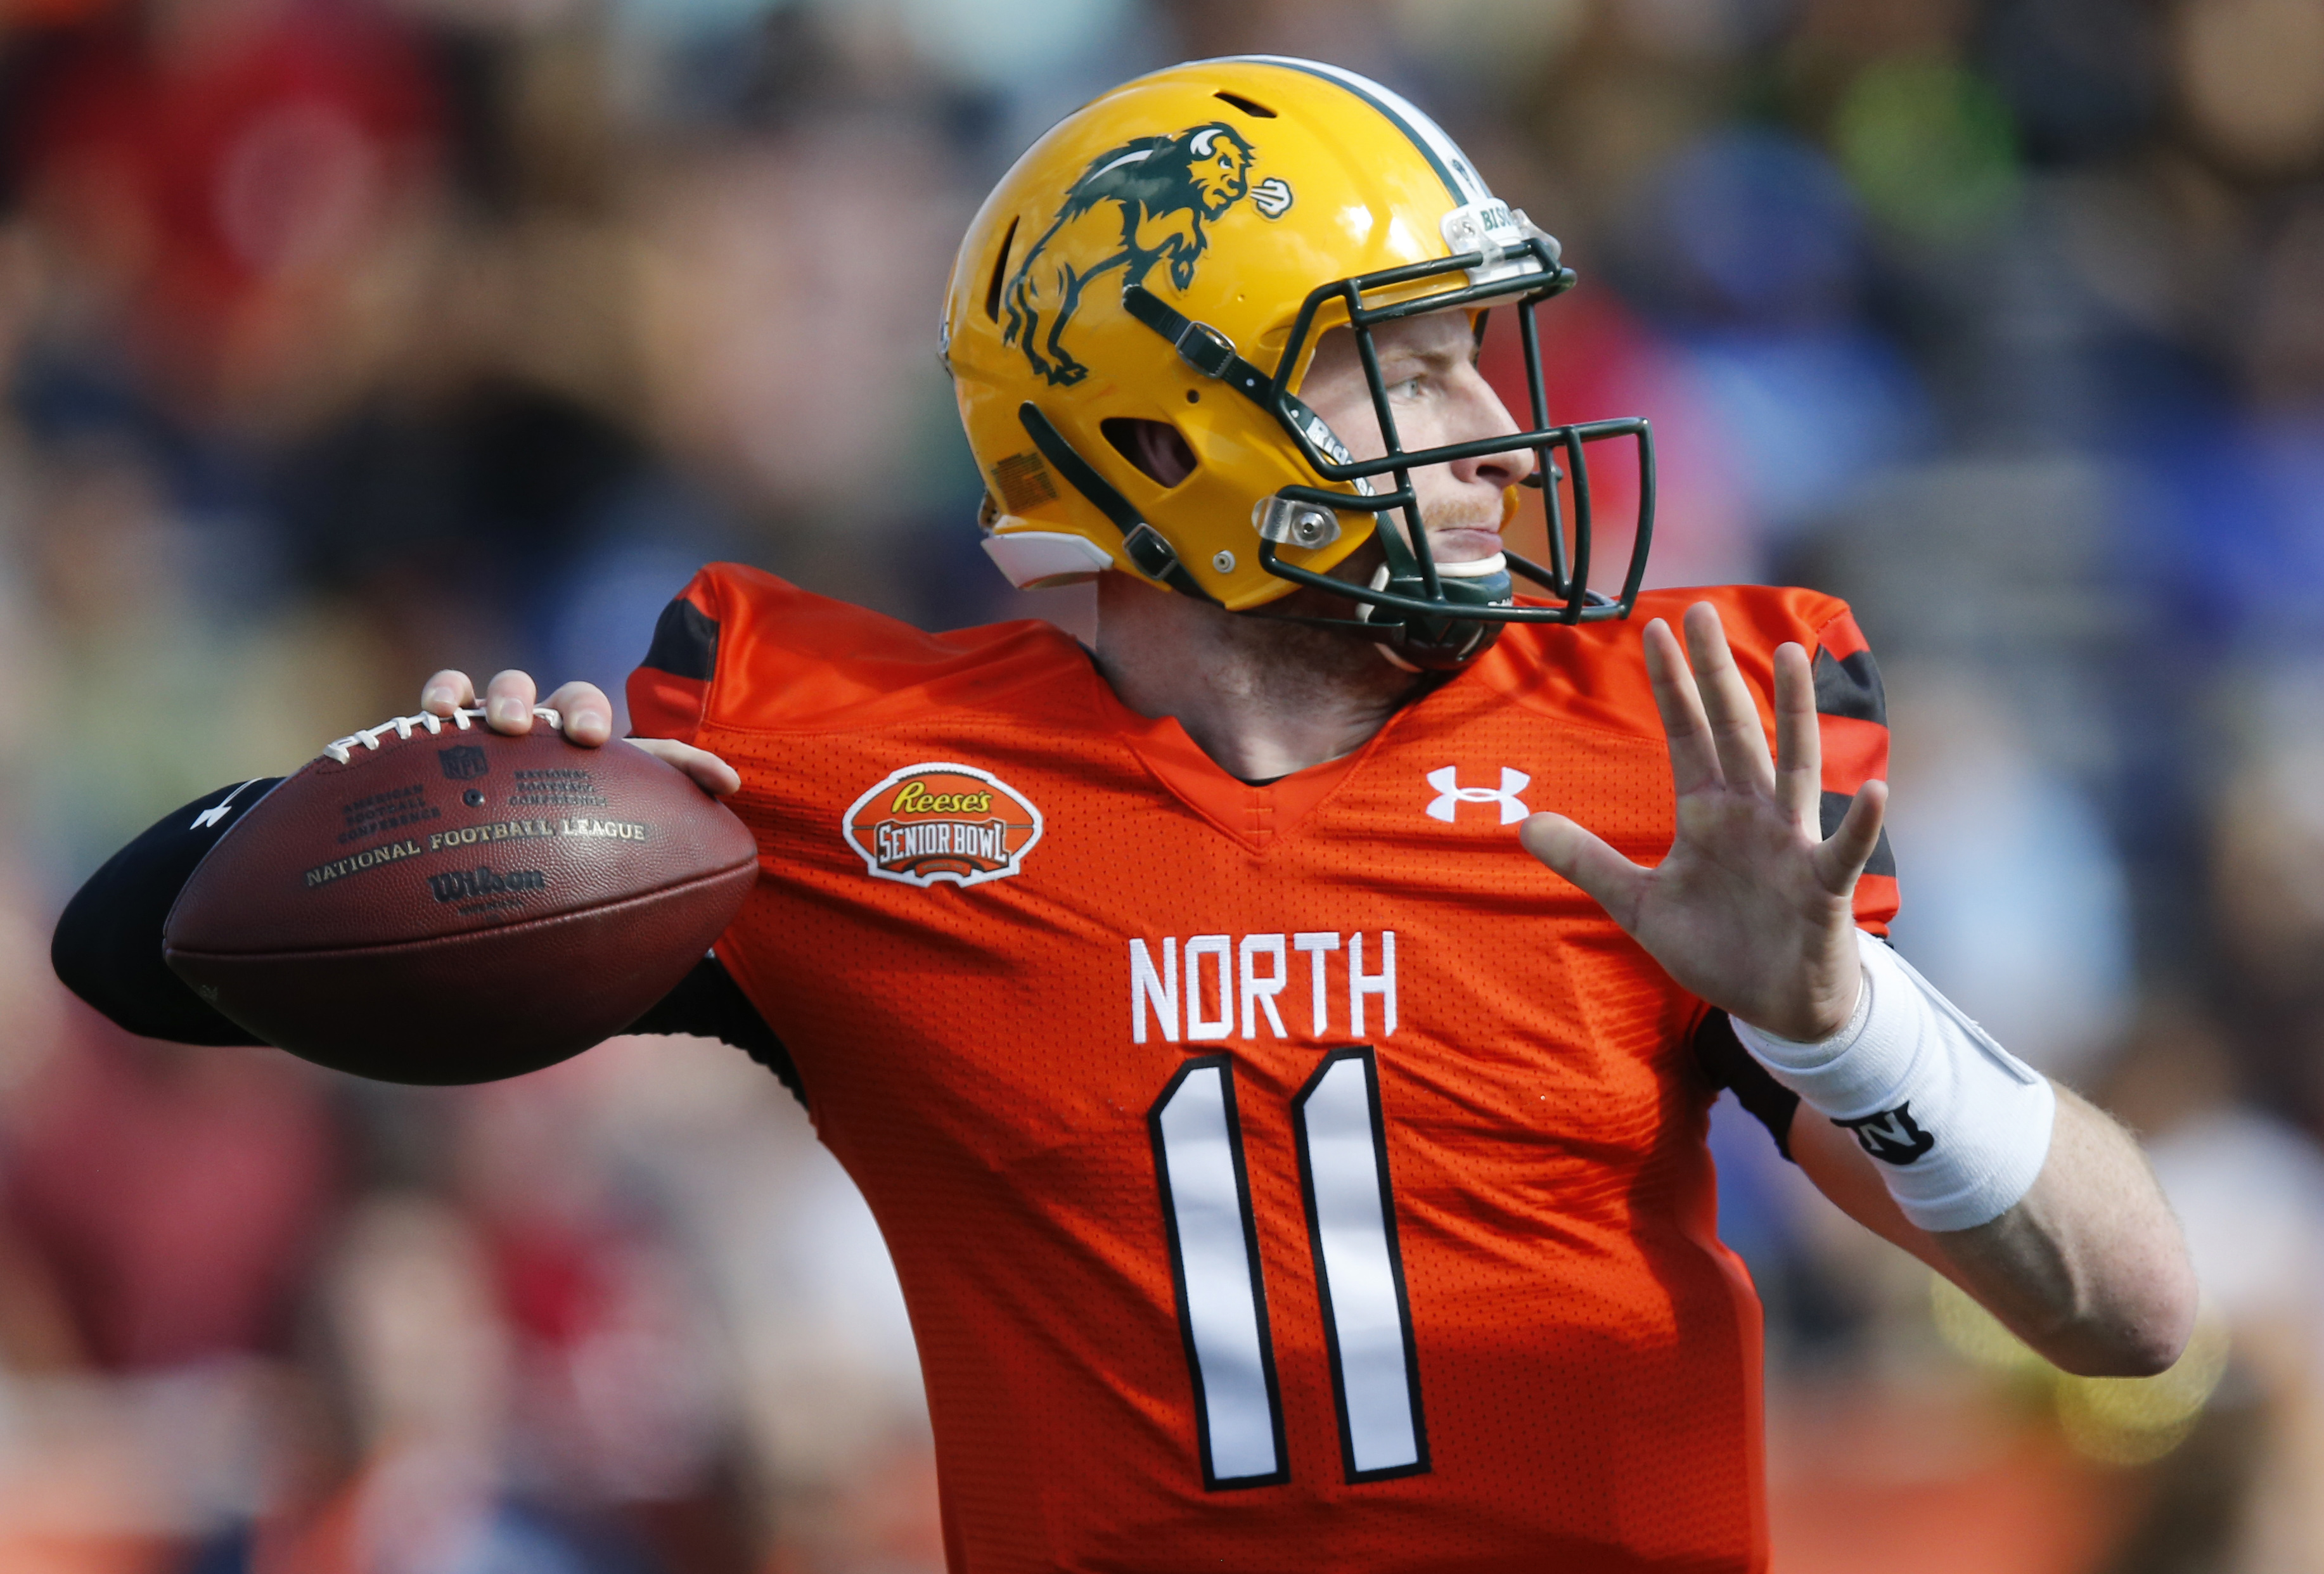 North Dakota State quarterback Carson Wentz, of the North Team, throws a pass during the Senior Bowl NCAA college football game, Saturday, Jan. 30, 2016, at LaddPeebles Stadium, in Mobile, Ala. (AP Photo/Brynn Anderson)